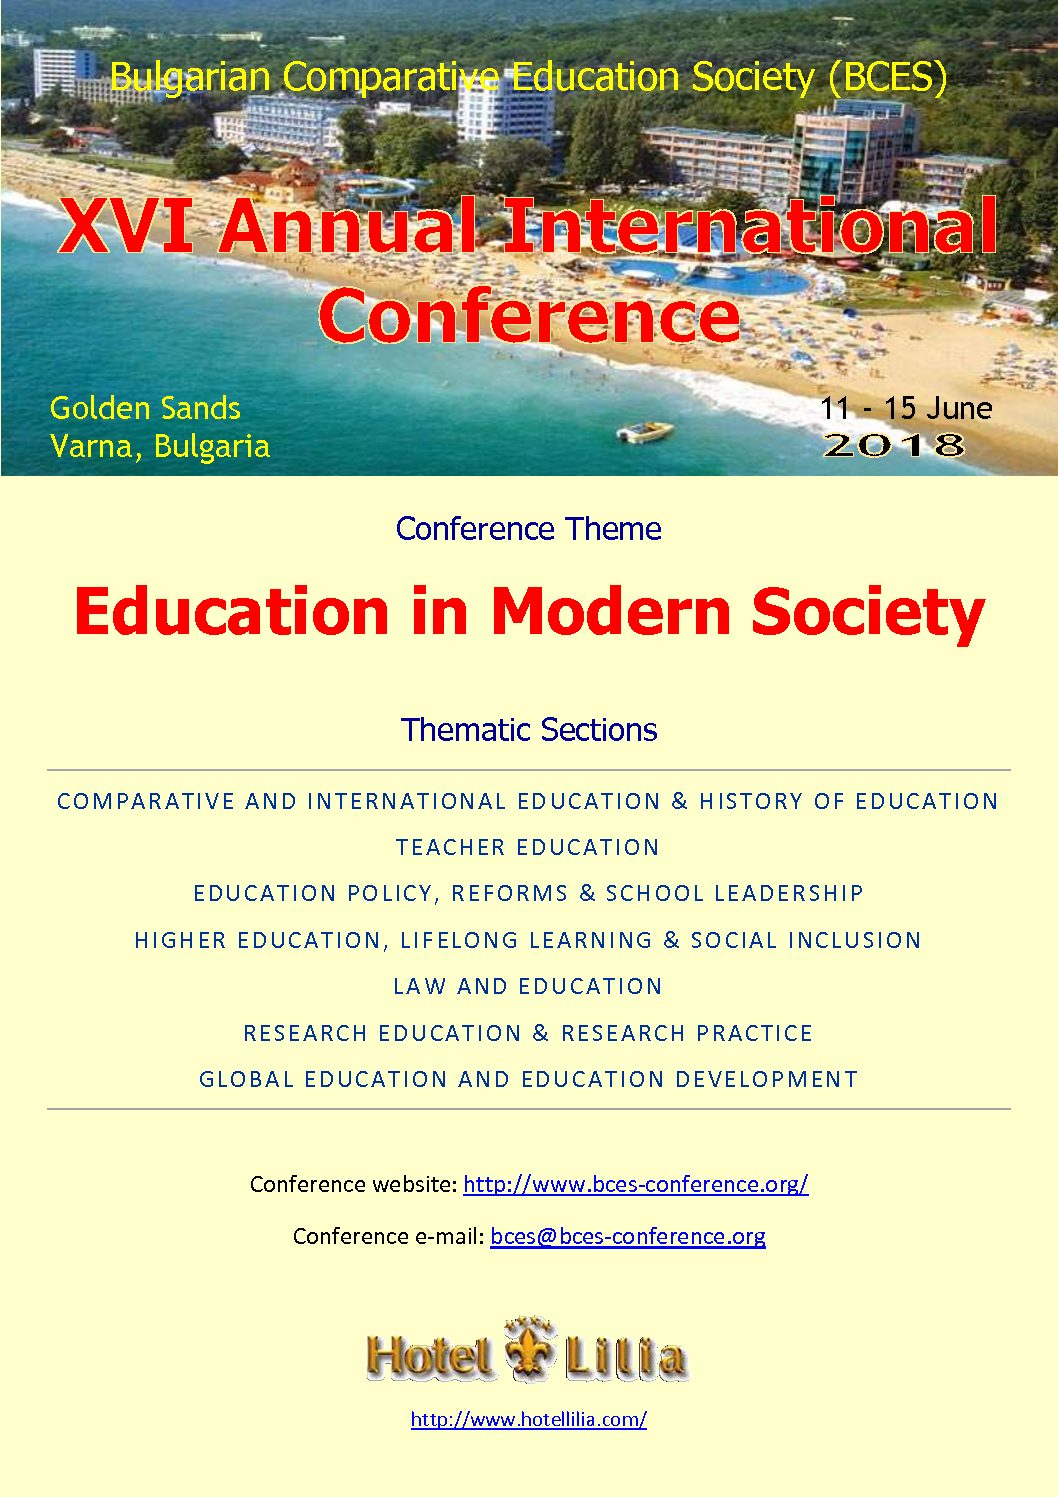 Bulgarian Comparative Education Society (BCES)  XVI Annual International Conference  Golden Sands, Varna, Bulgaria, 11 – 15 June 2018